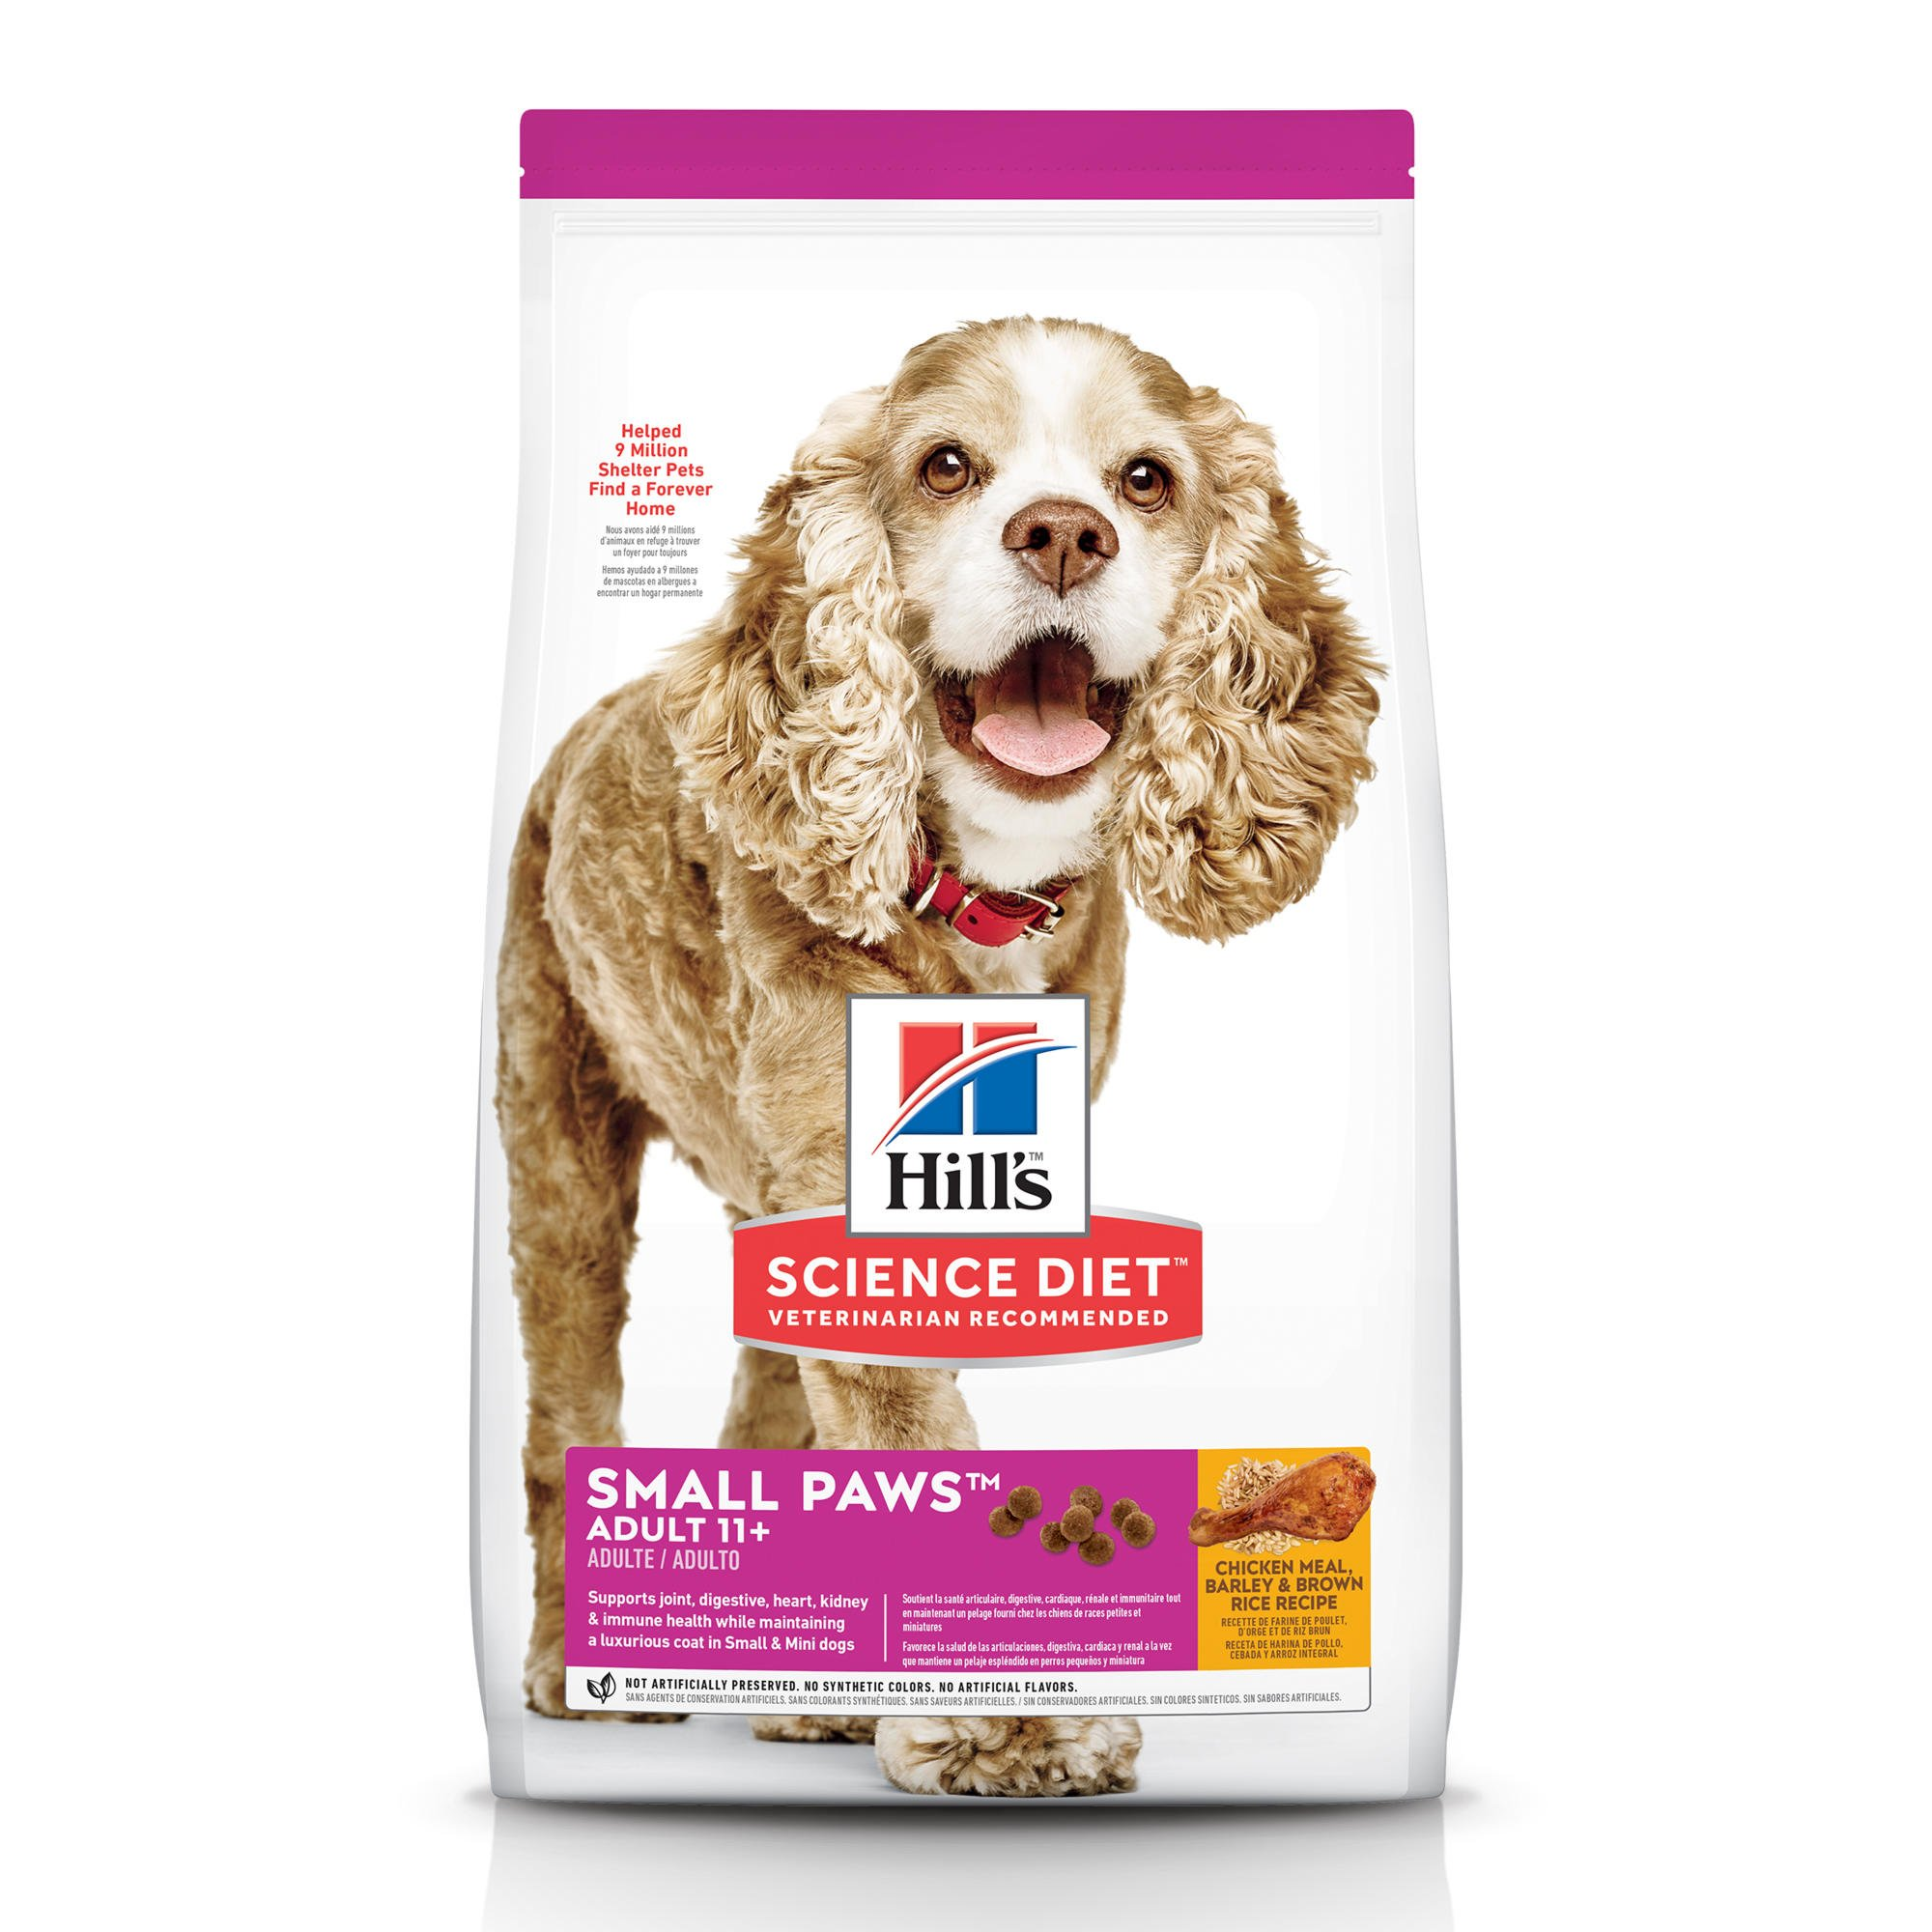 Hill's Science Diet Adult 11+ Small Paws Chicken Meal, Barley & Brown Rice Recipe Dry Dog Food, 4.5 lbs., Bag